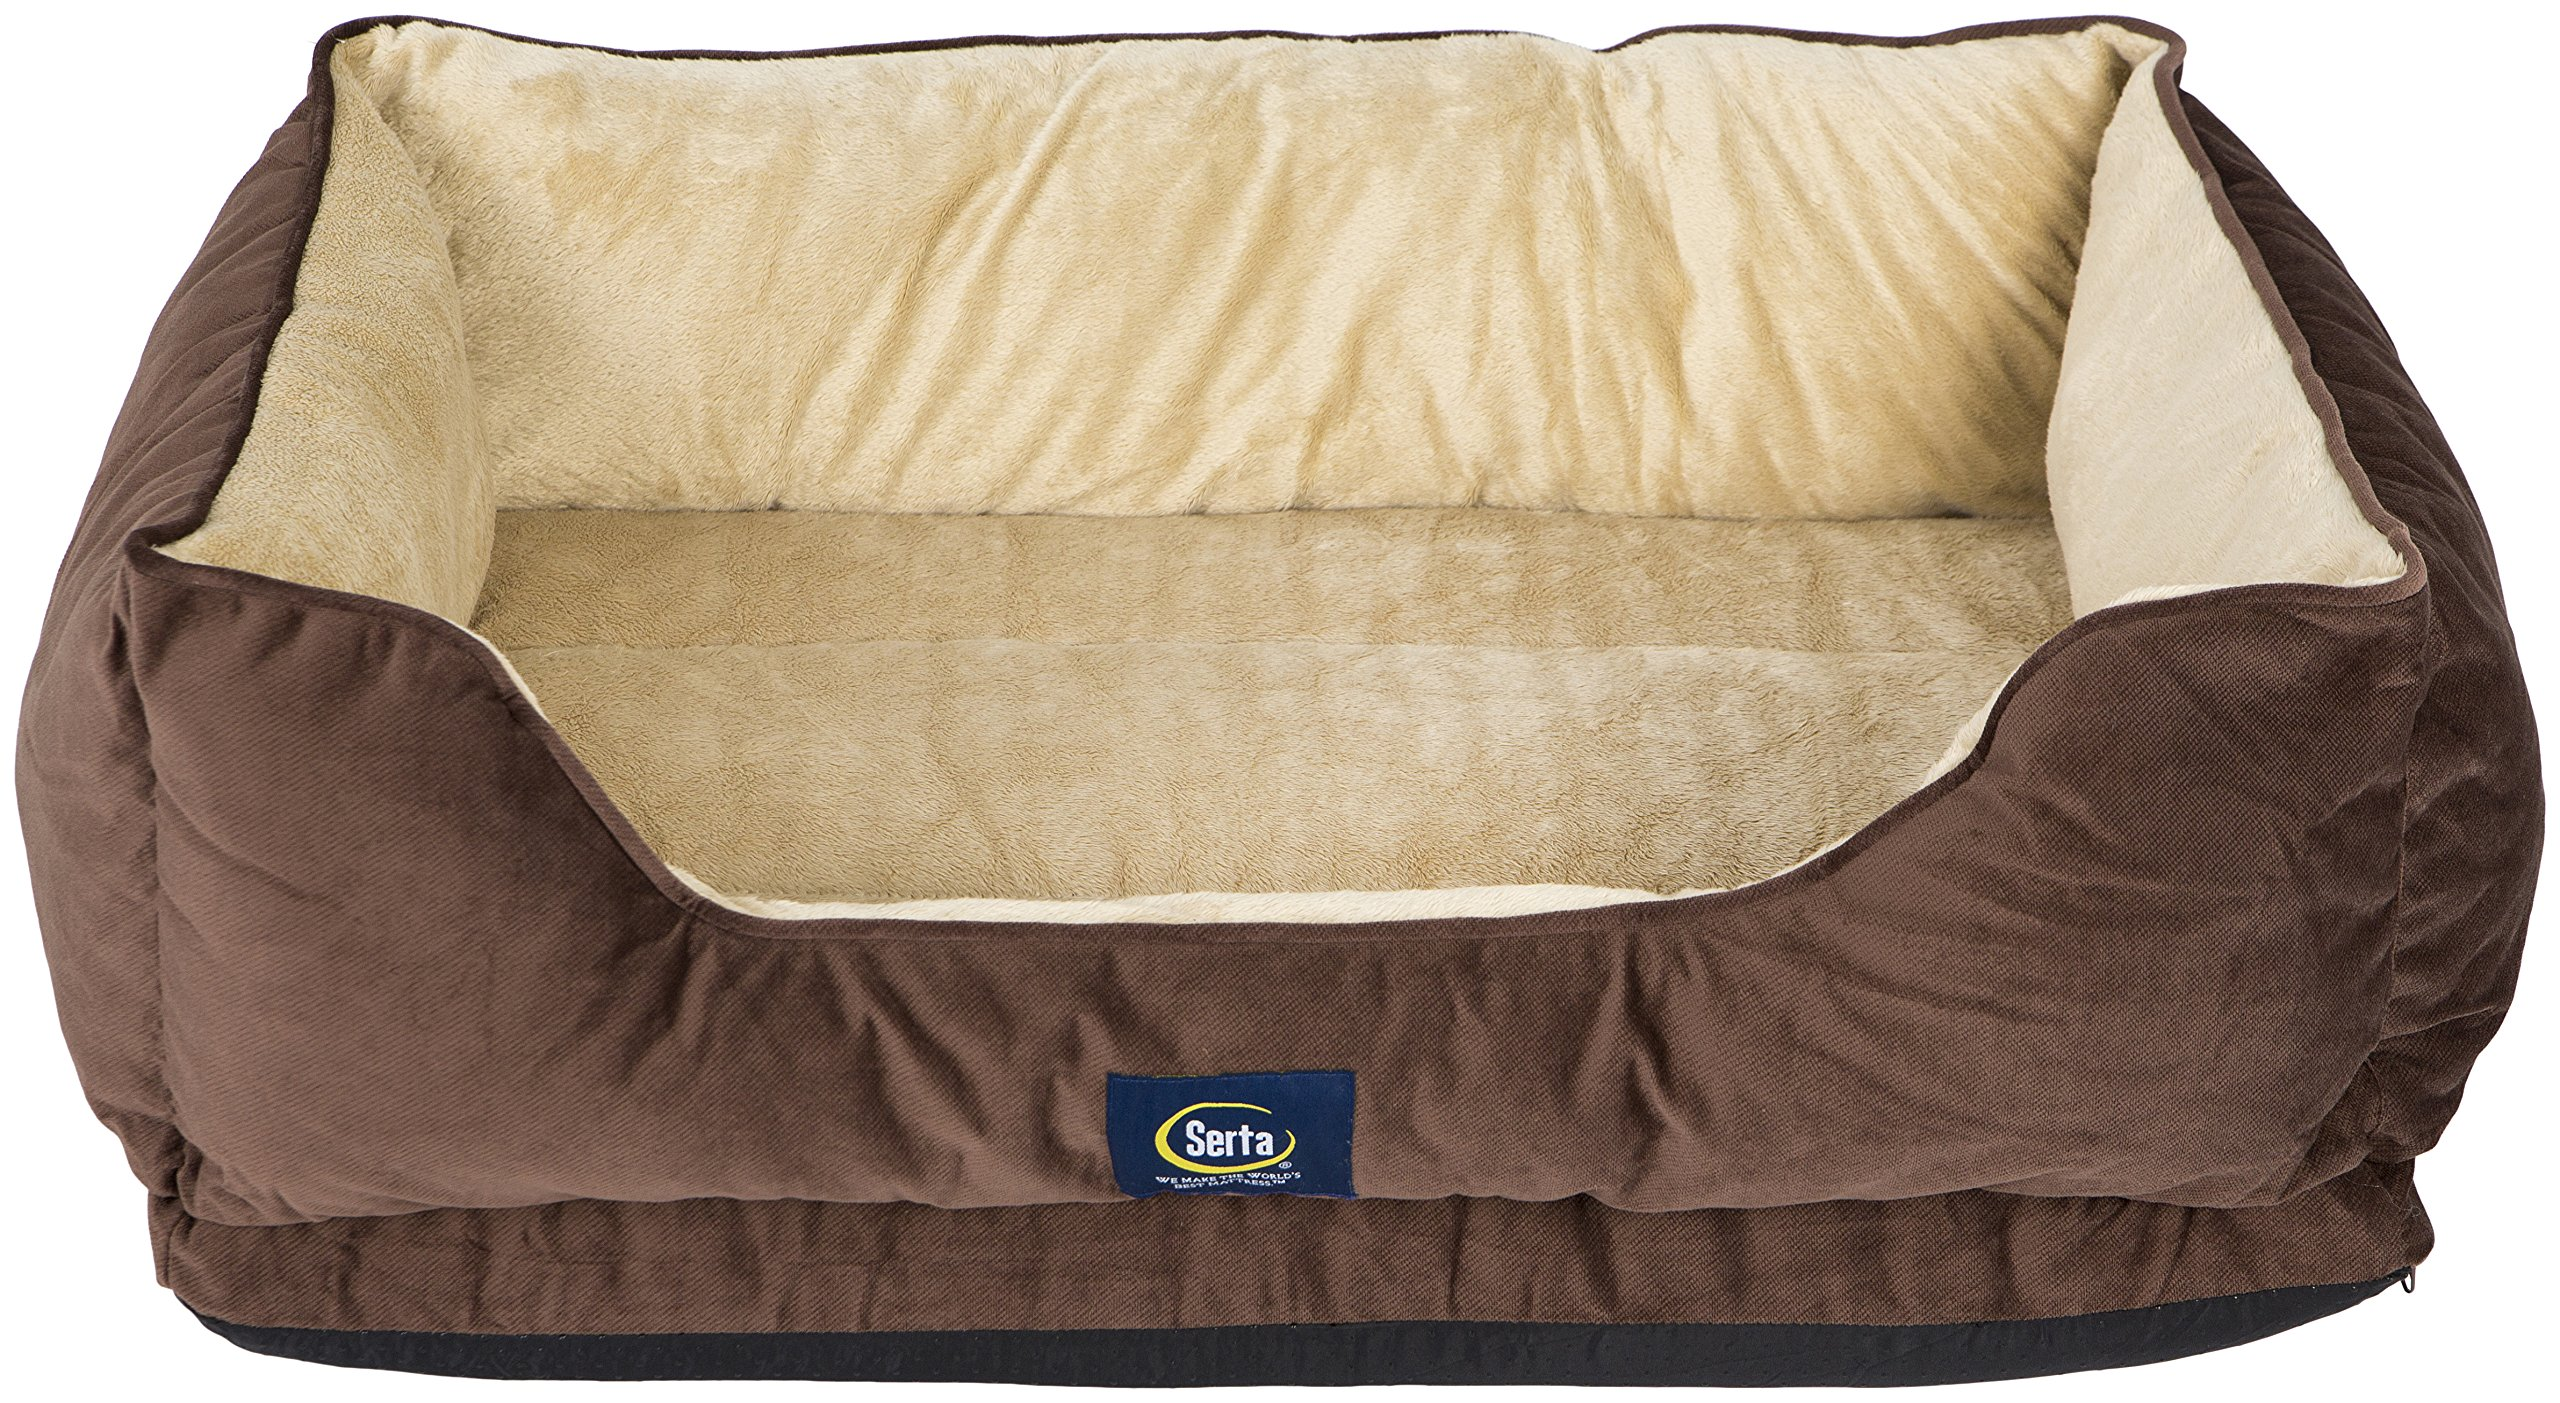 Cool Details About Serta Ortho Cuddler Pet Bed Mocha Uwap Interior Chair Design Uwaporg